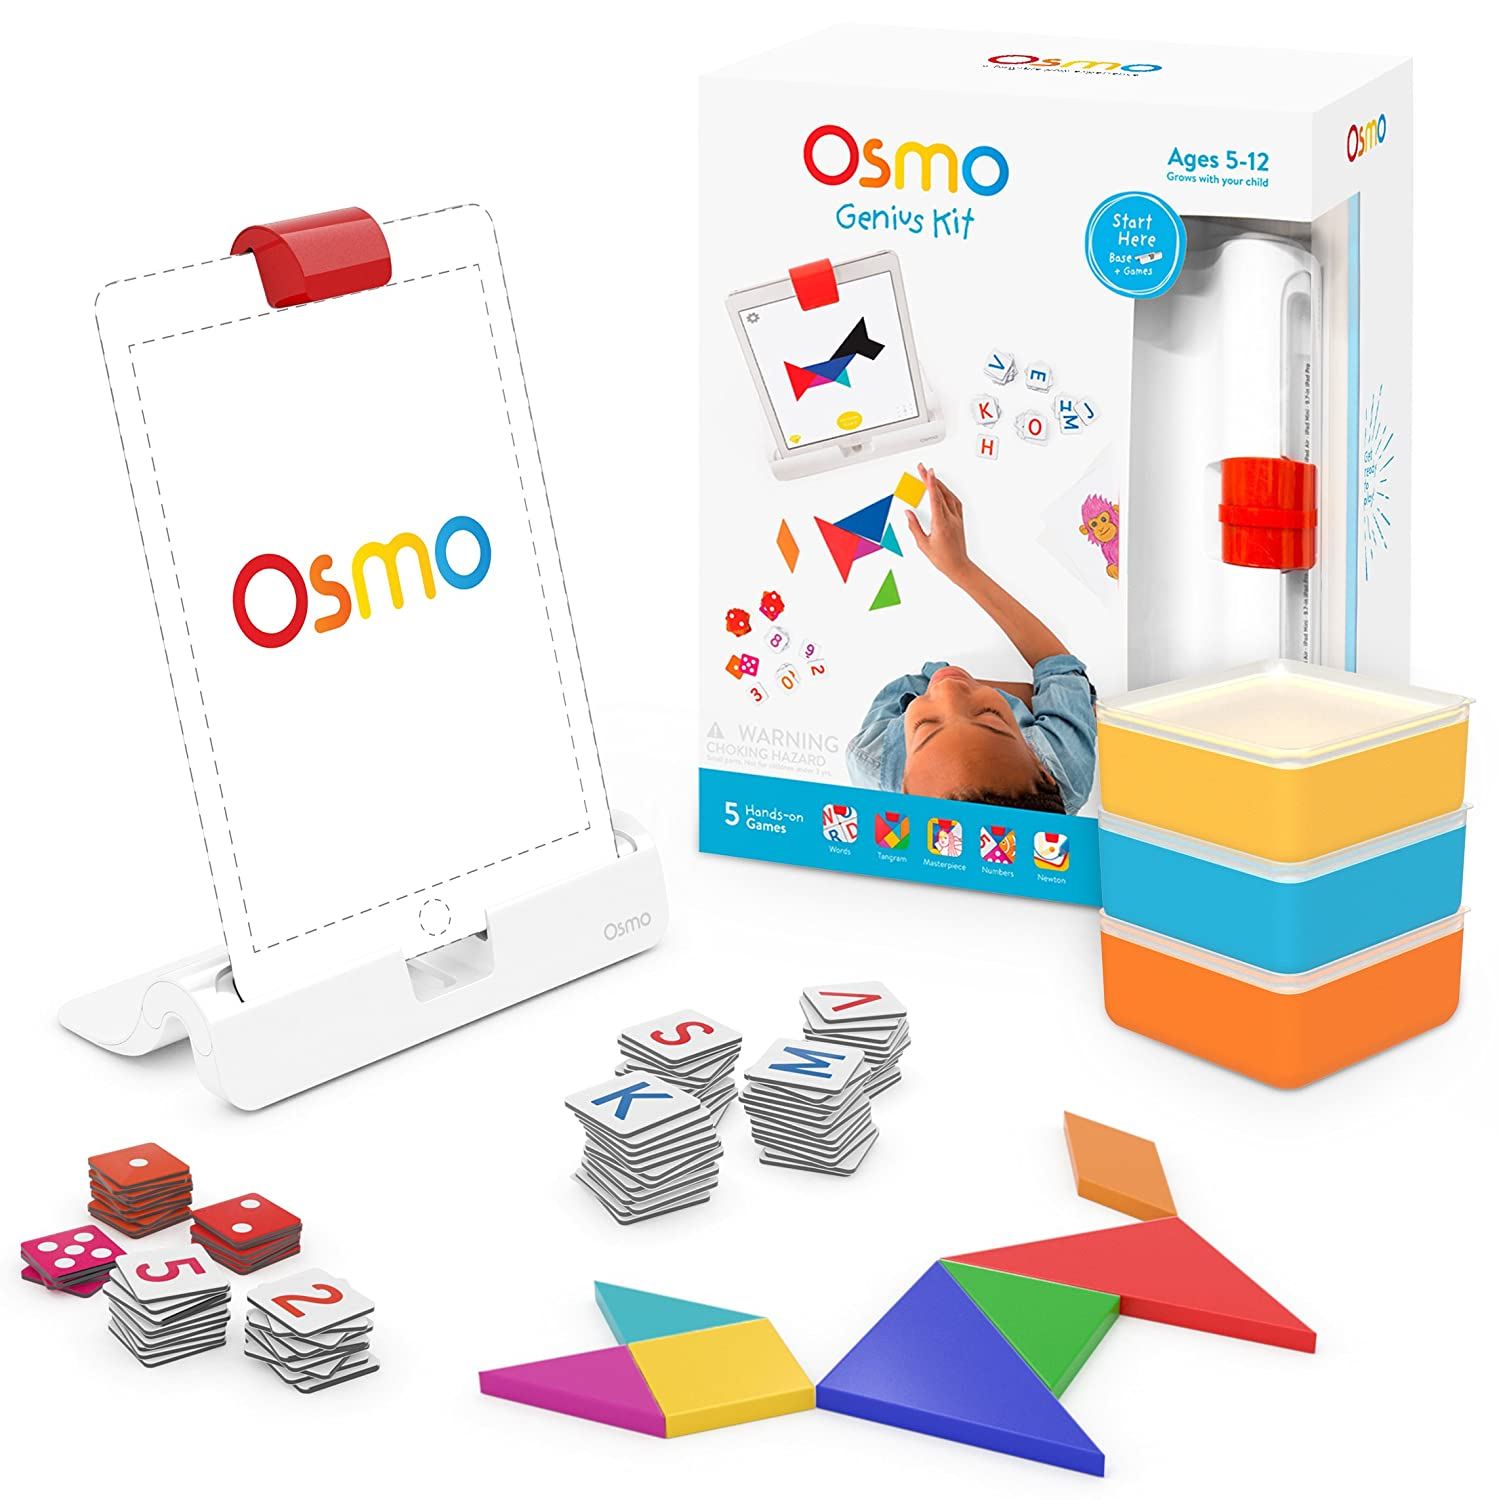 Osmo Genius Kit (iPad Base included) $99